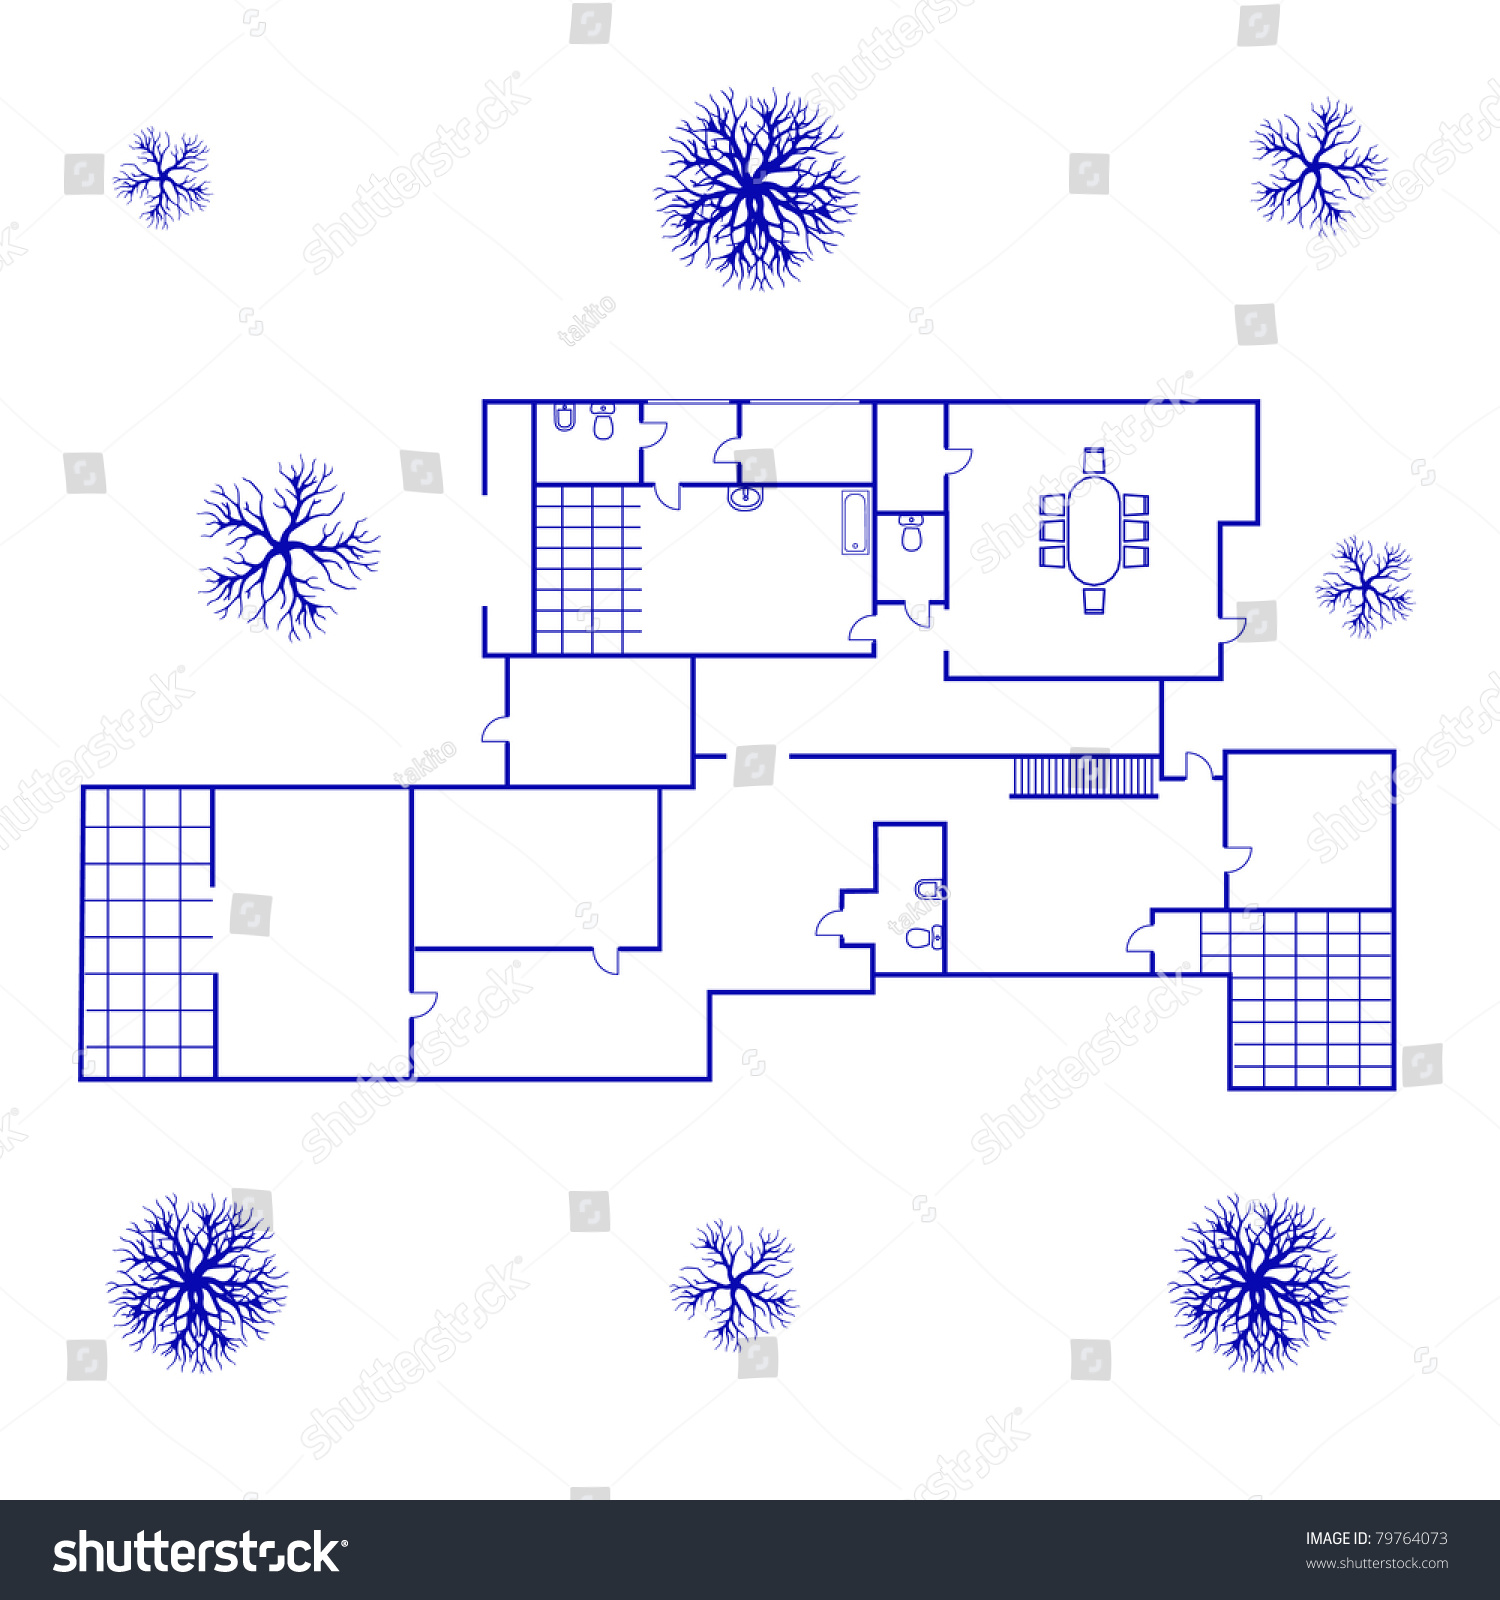 Architectural background blueprint big house blue stock vector architectural background blueprint of big house in blue color malvernweather Gallery